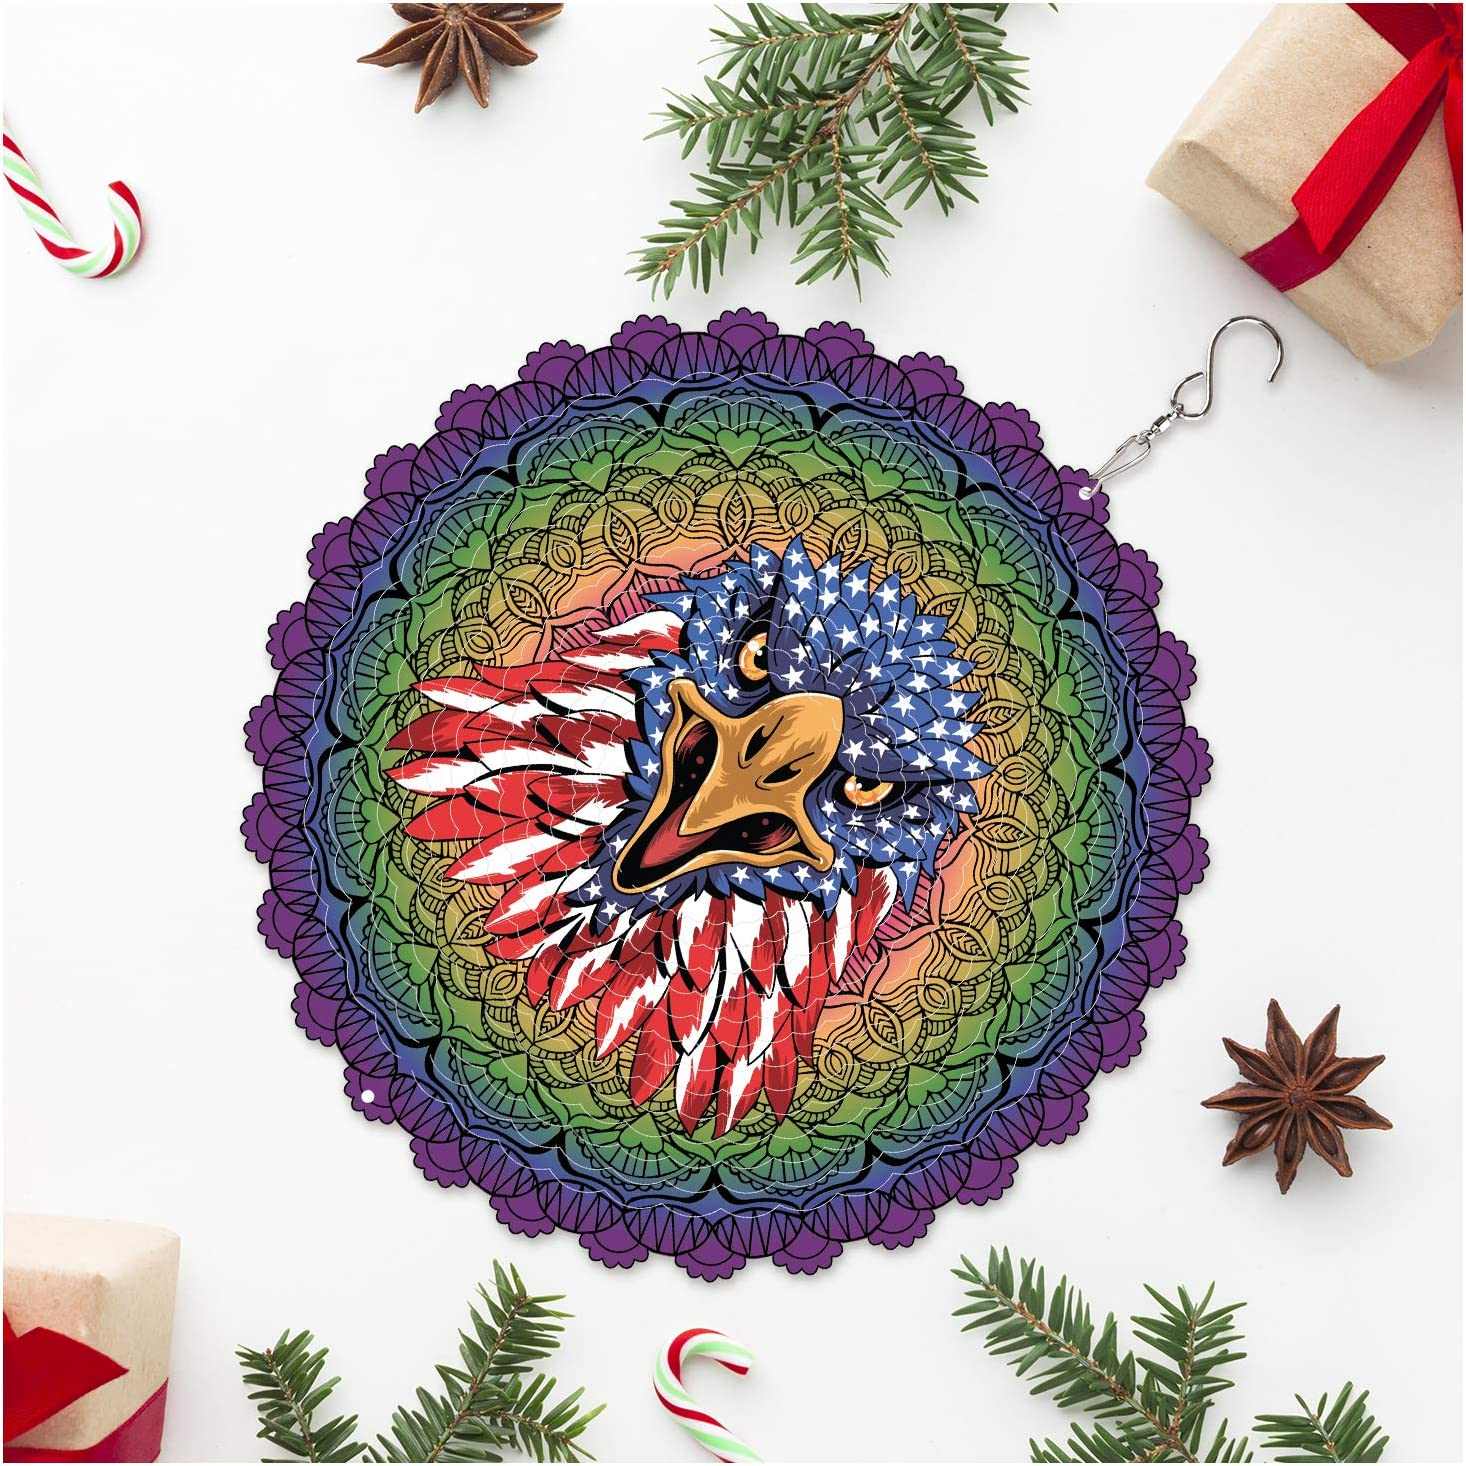 Wind Spinners Outdoor Metal Decorations | Stainless Steel Ornament for Eagle American USA US Flag Mandala Garden Home Decor | Multi Color Metal Sun Catcher Art for Tree Hanging, Backyard